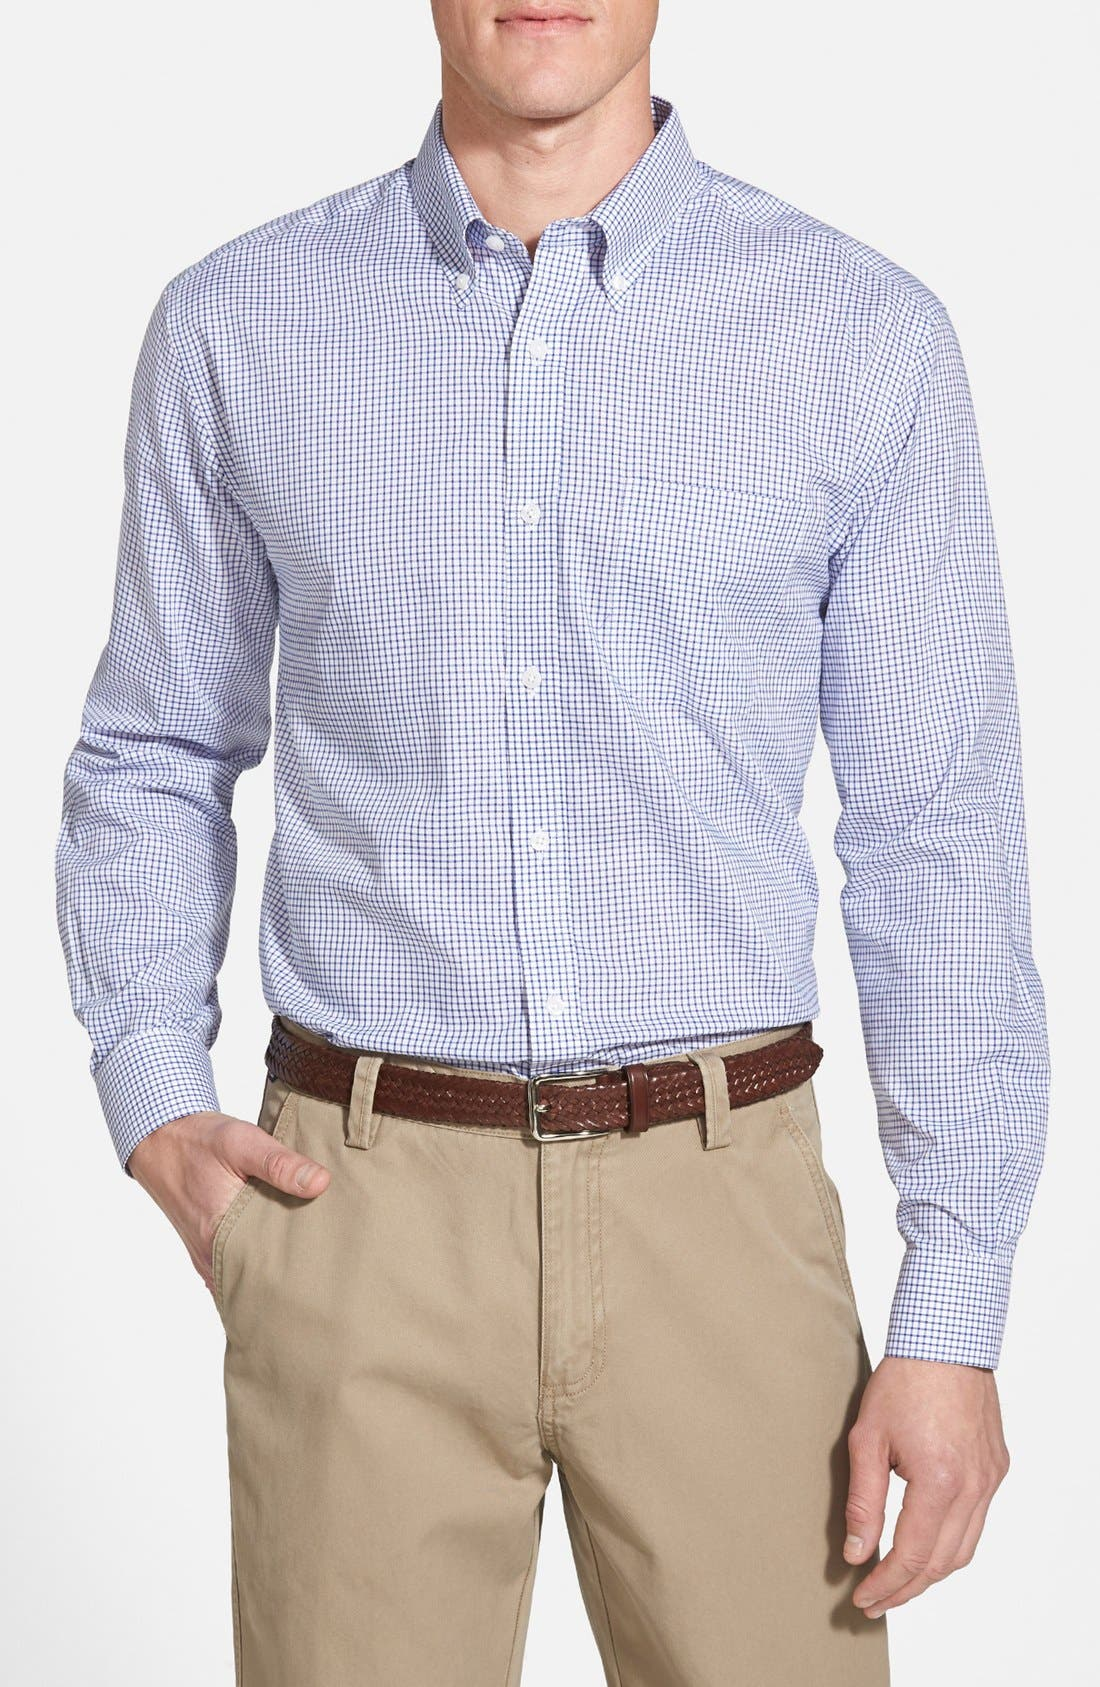 Cutter & Buck Epic Easy Care Classic Fit Wrinkle Free Tattersall Plaid Sport Shirt